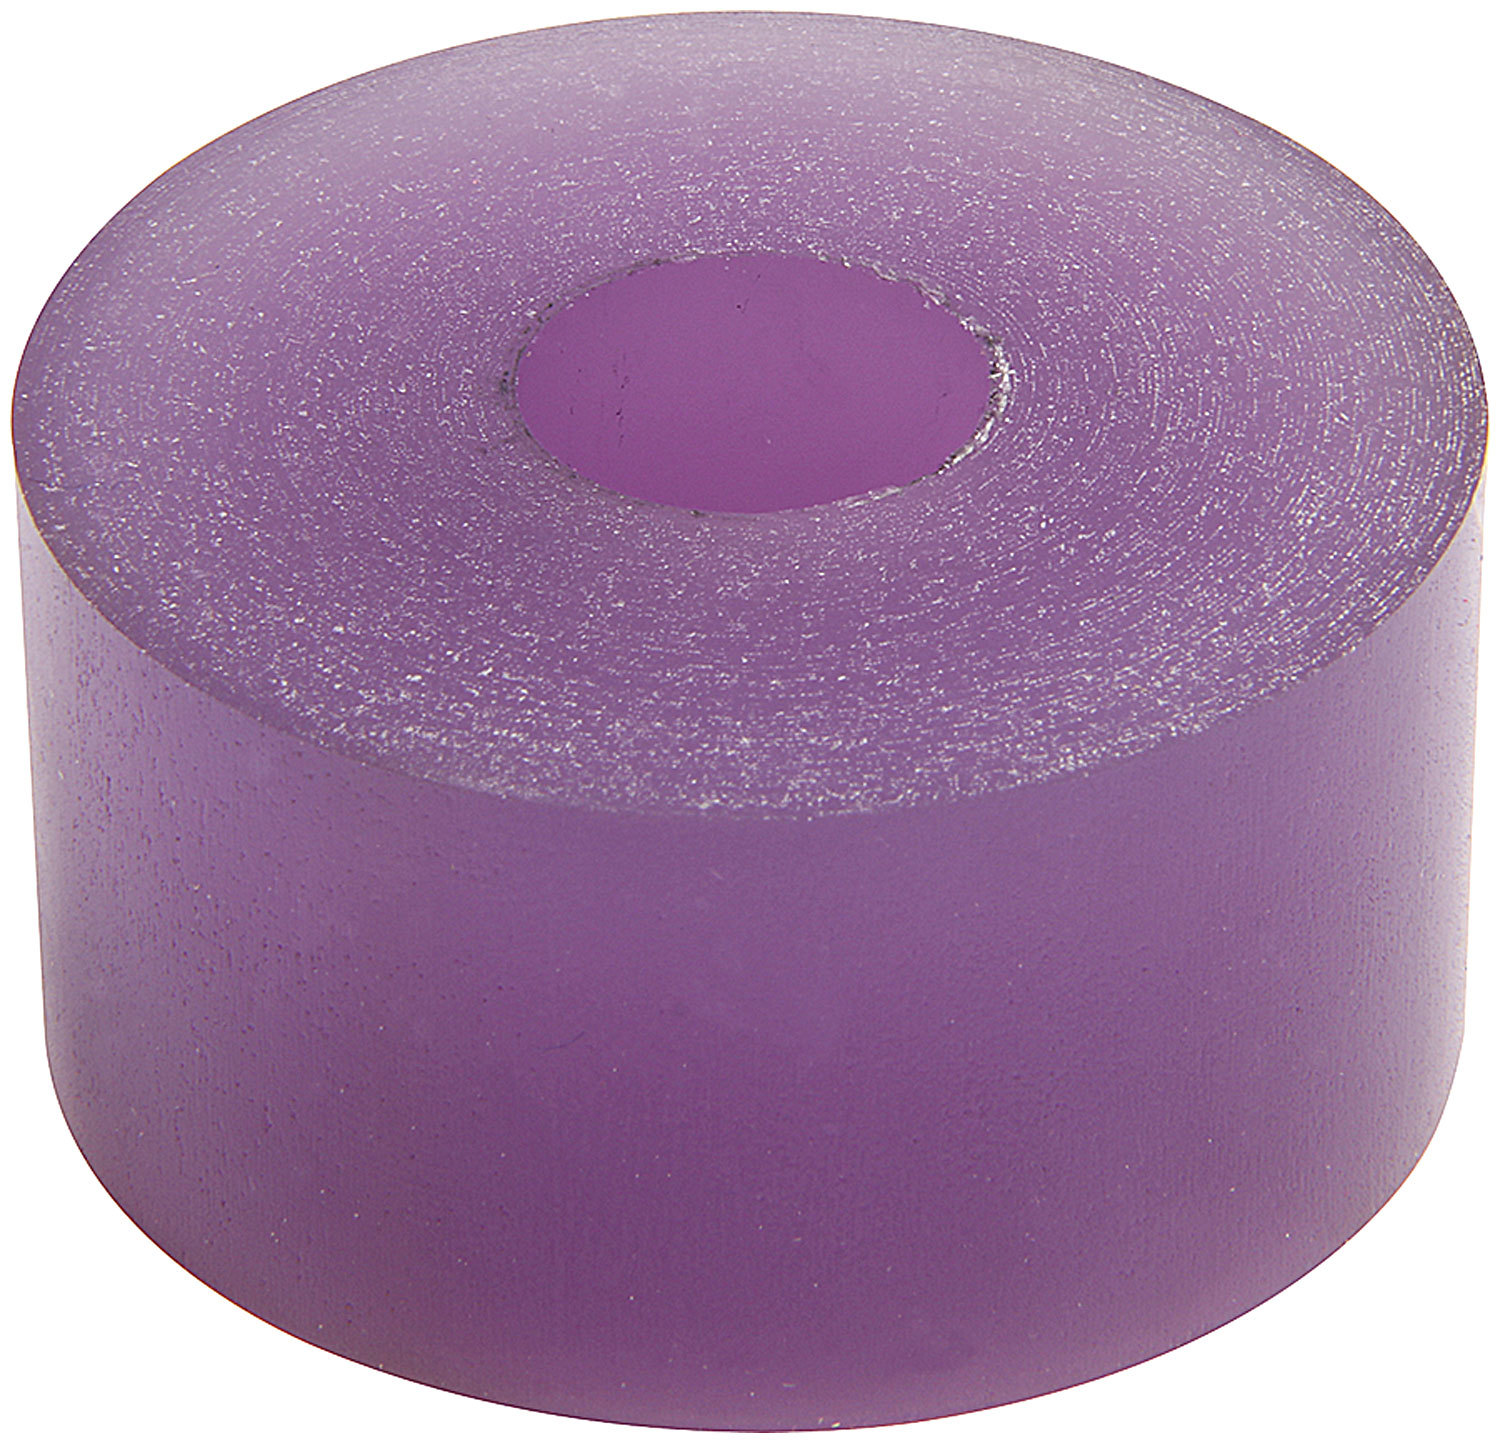 Allstar Performance 64378 Bump Stop Puck, 2 in OD, 1/2 in ID, 1 in Tall, 60 Durometer, Polyurethane, Purple, 14 mm Shocks, Each